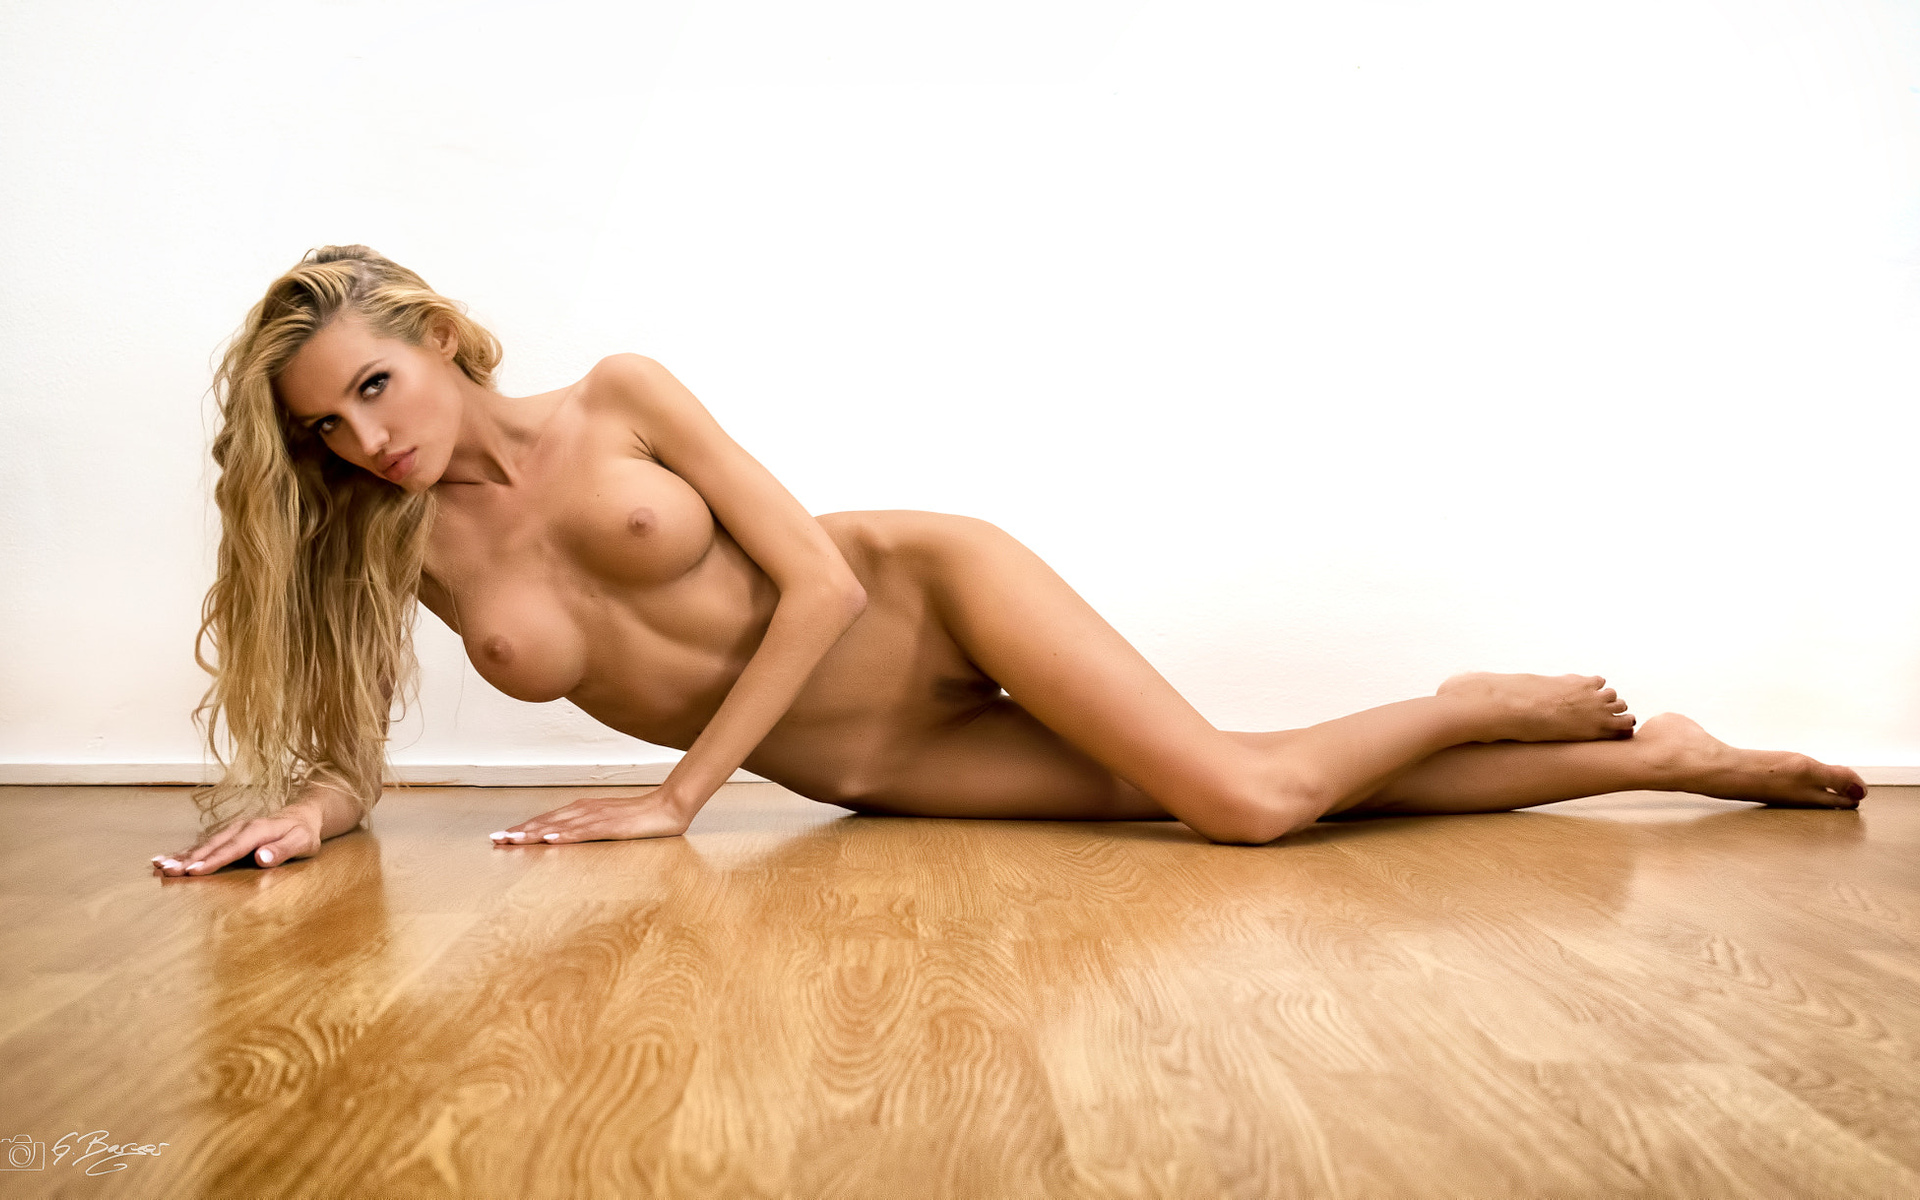 Naked blonde girls pics and free nude women porn